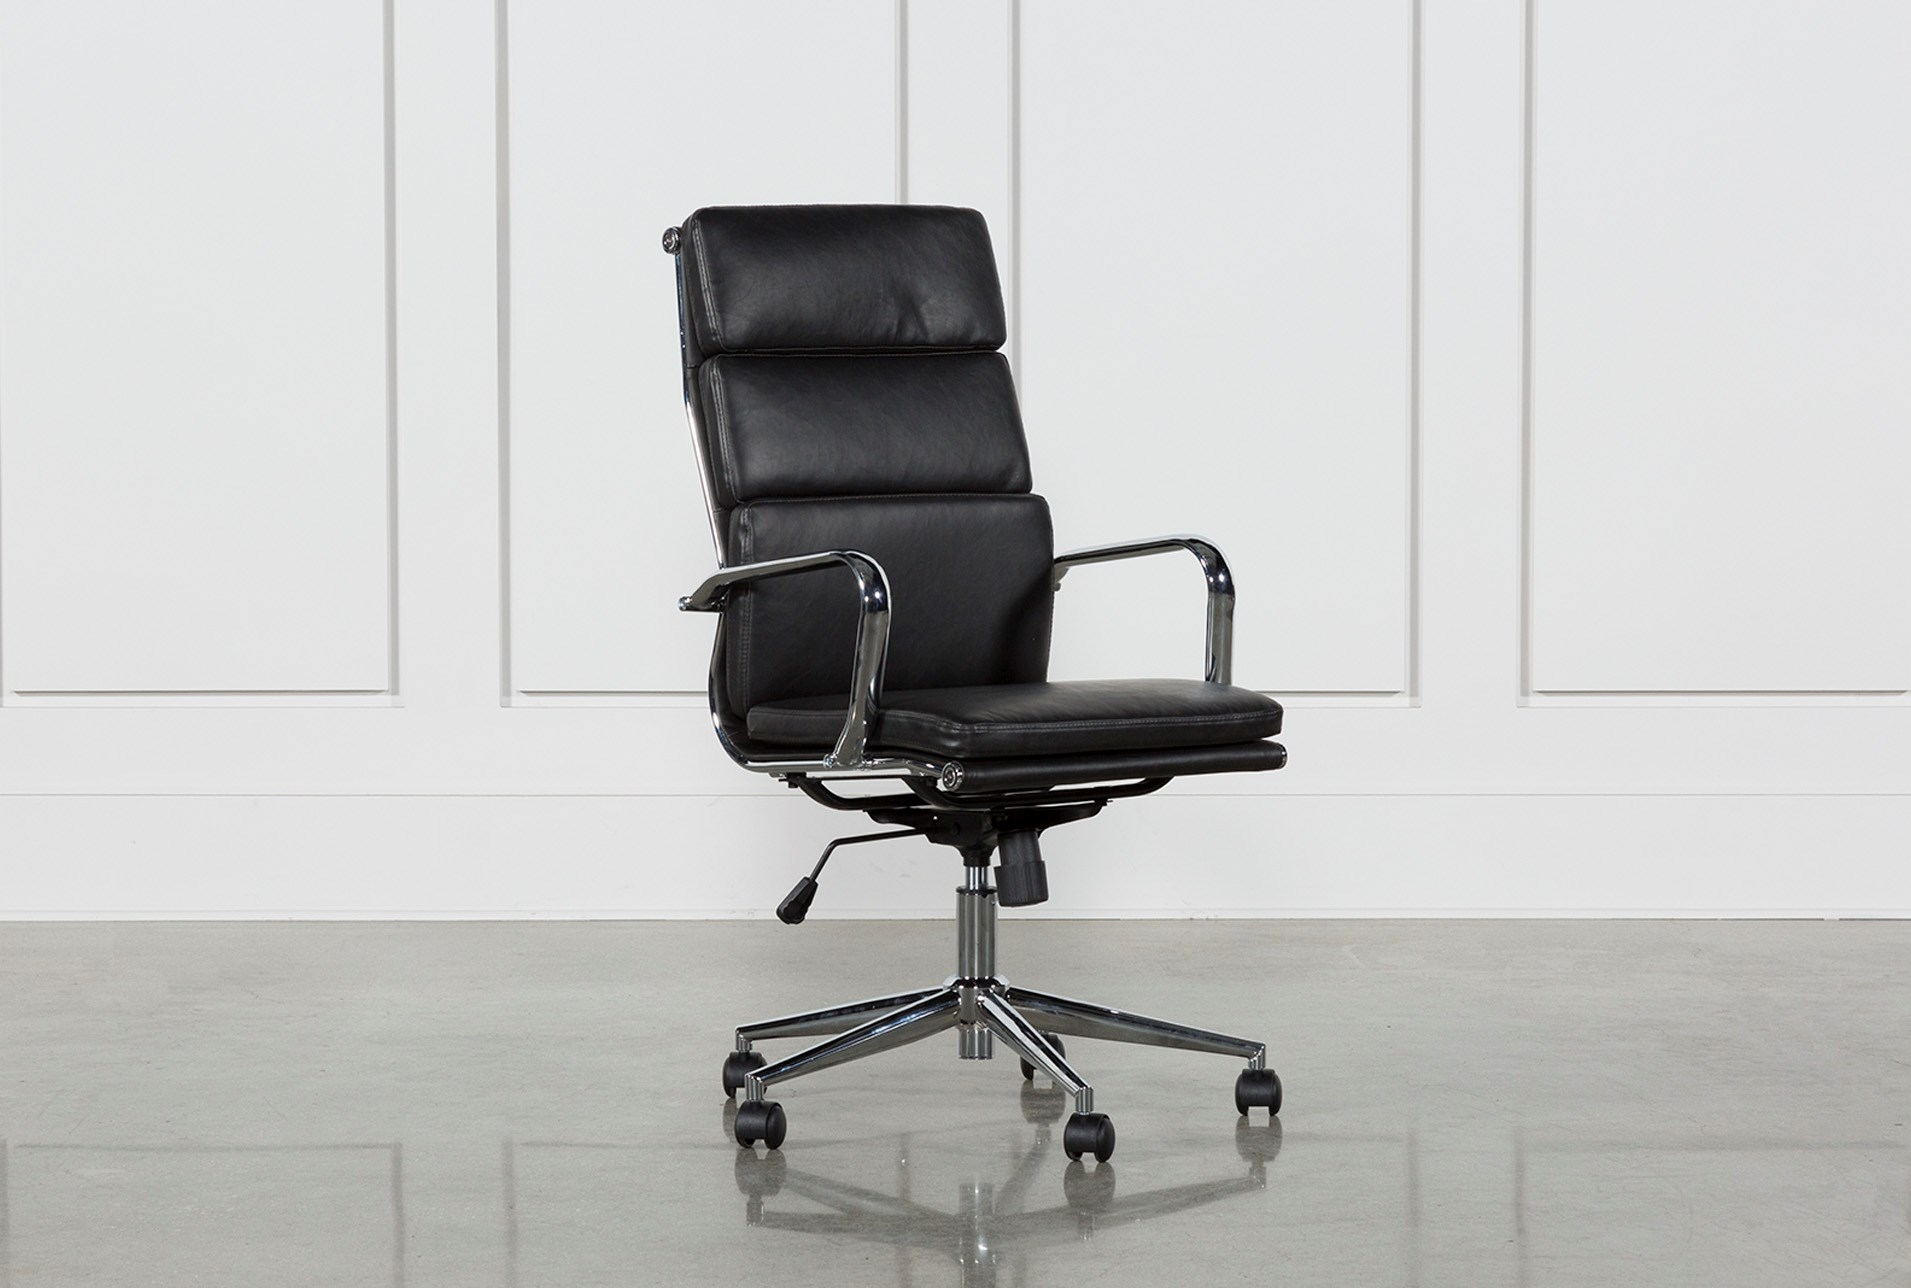 office chair back view. Moby Black High Back Office Chair (Qty: 1) Has Been Successfully Added To Your Cart. View H